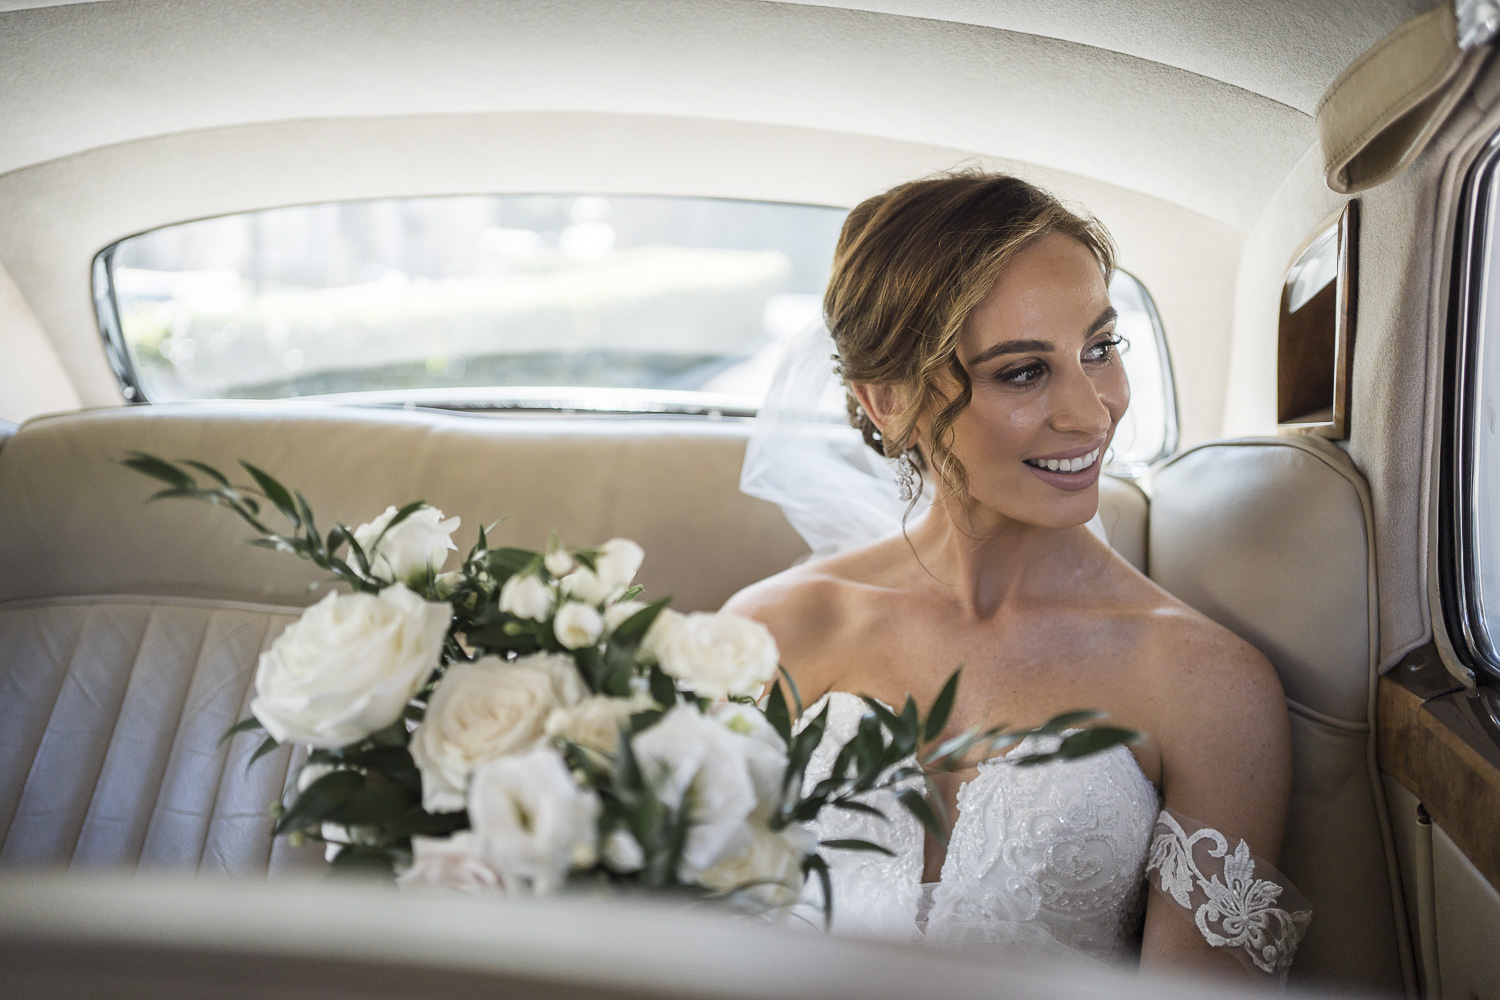 Bride in the limo before the church ceremony at Mercedes college